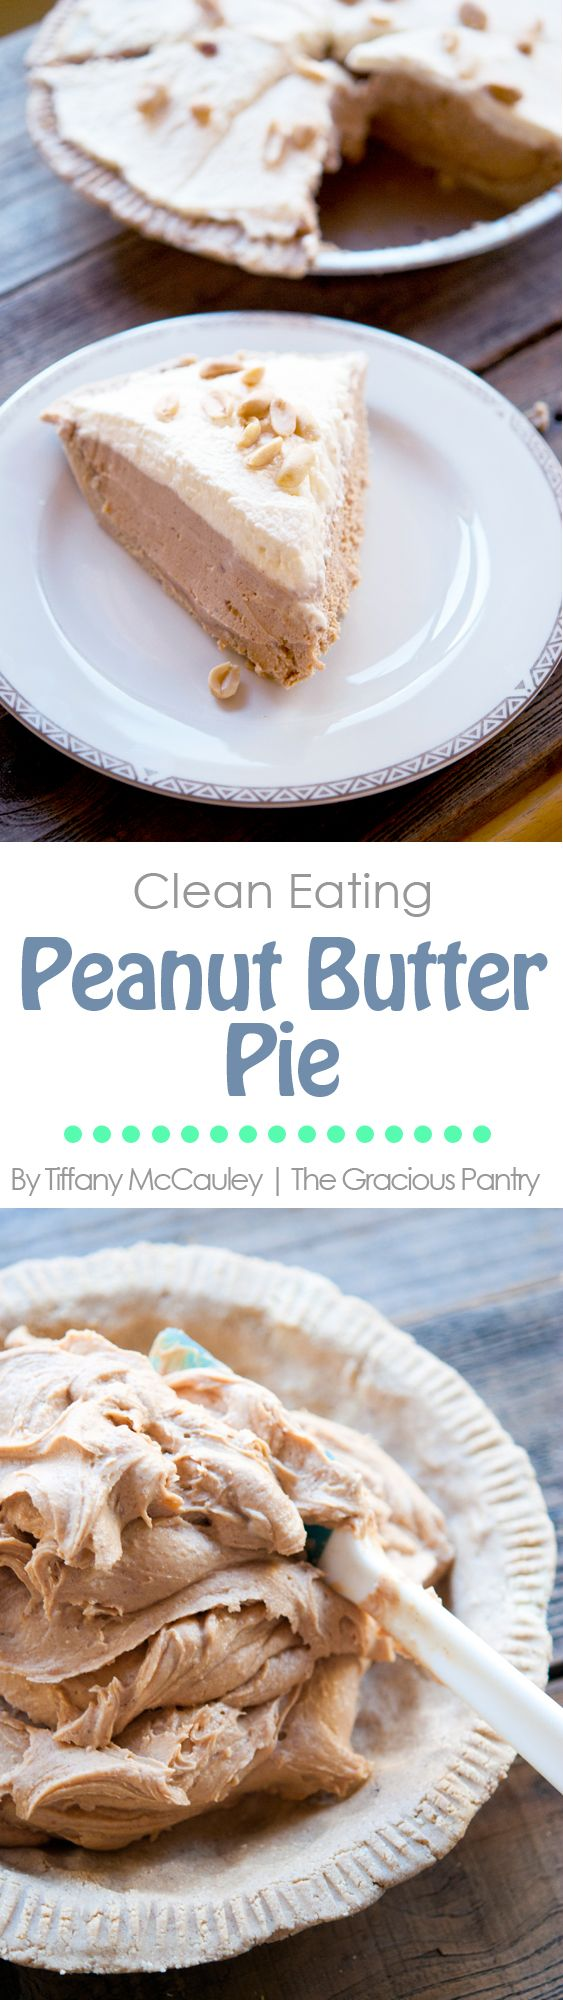 157 best clean eating vegetarian recipes images on pinterest clean eating peanut butter pie clean eating dessertshealthy dessert recipeshealthier dessertswhole food forumfinder Gallery